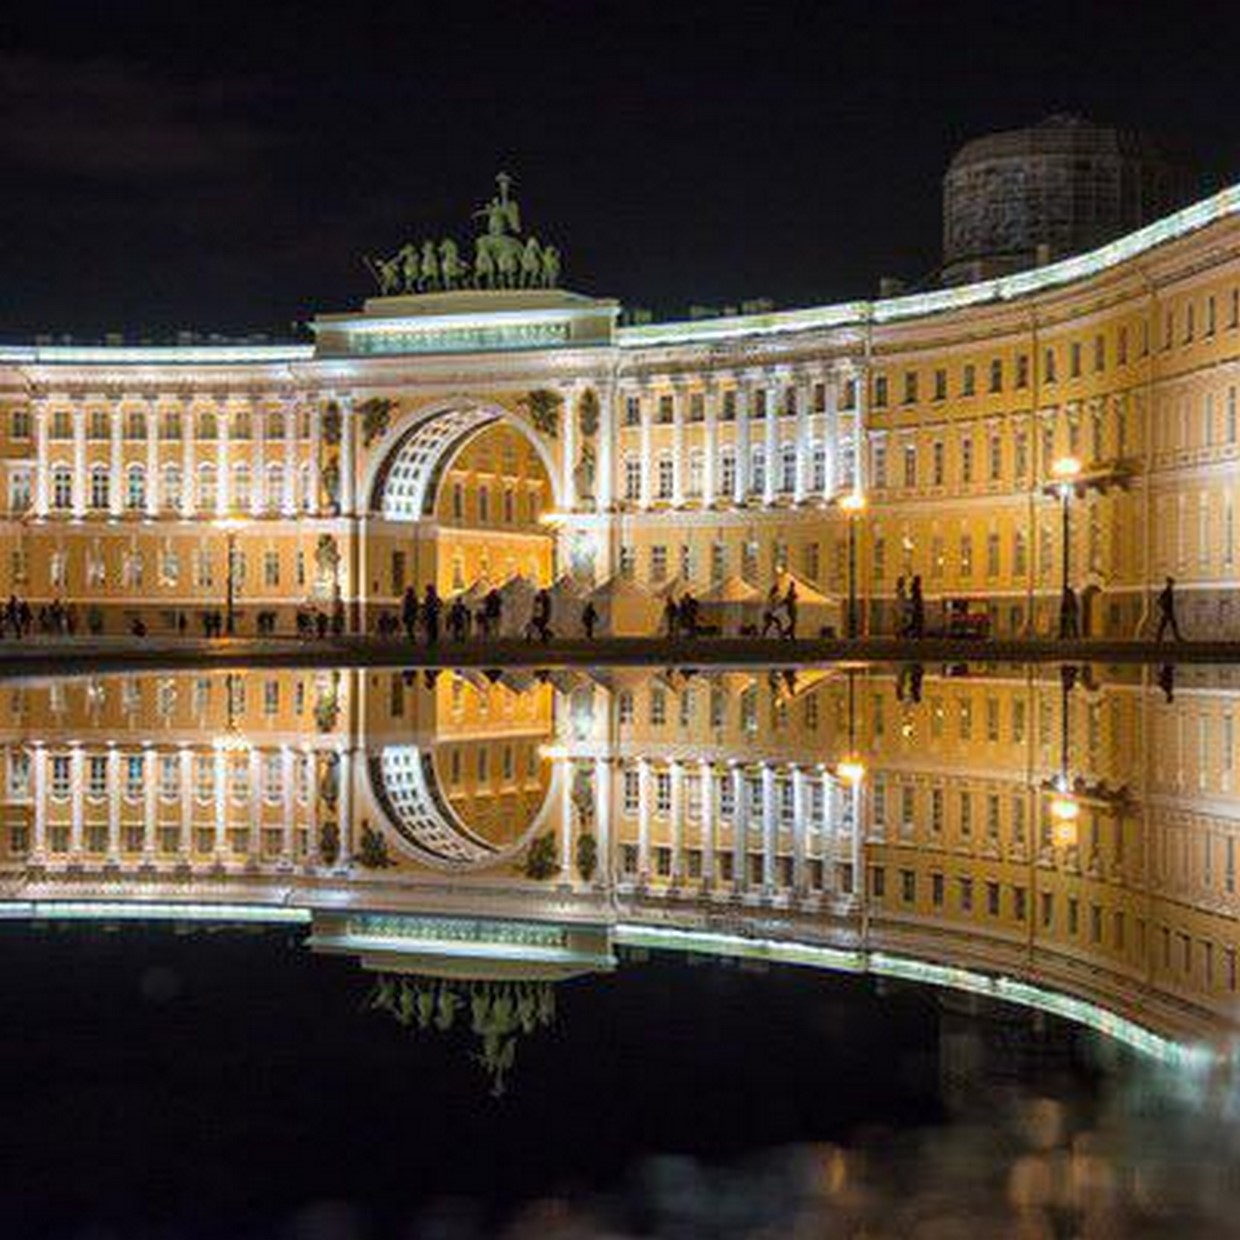 3 Day Shore Excursion of St. Petersburg Tour - Easy 9